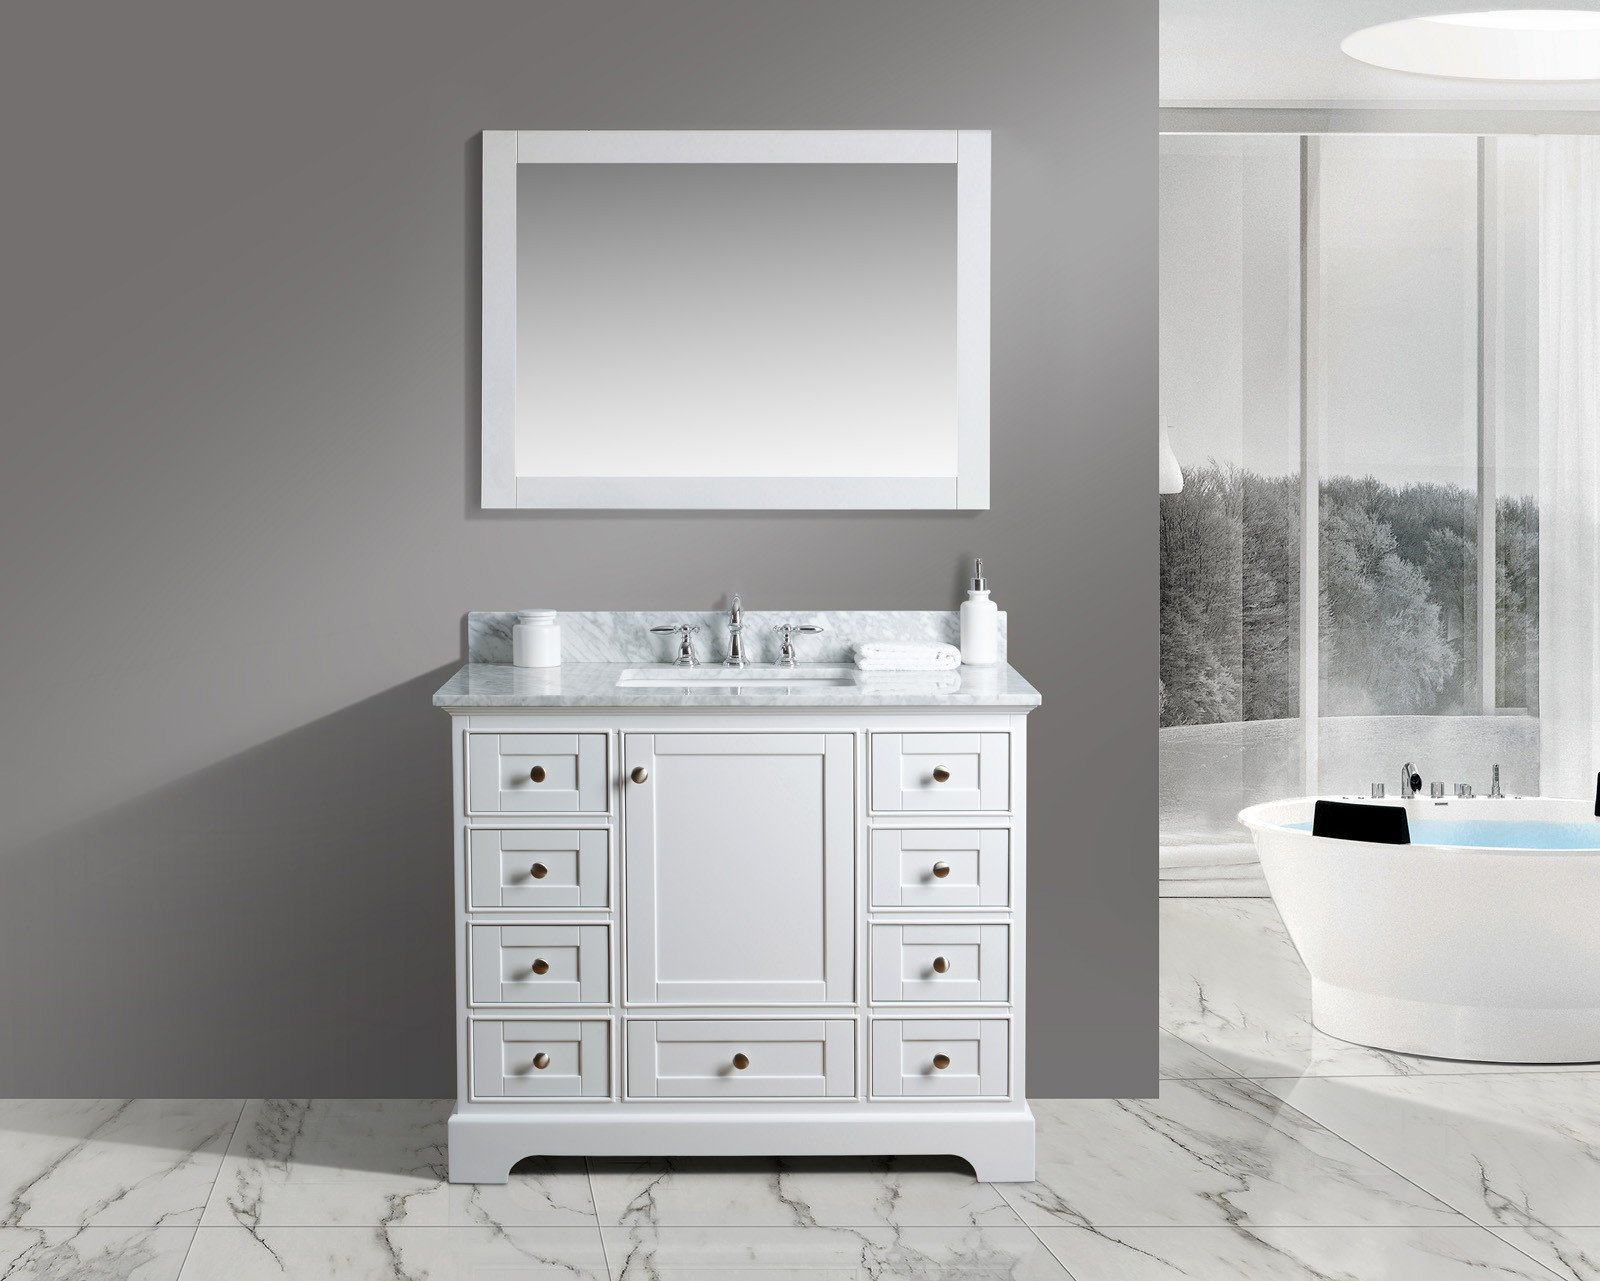 UrbanFurnishing.net - Jocelyn 42-Inch (42'') Bathroom Sink Vanity Set with White Italian Carrara Marble Top - White by UrbanFurnishing.net